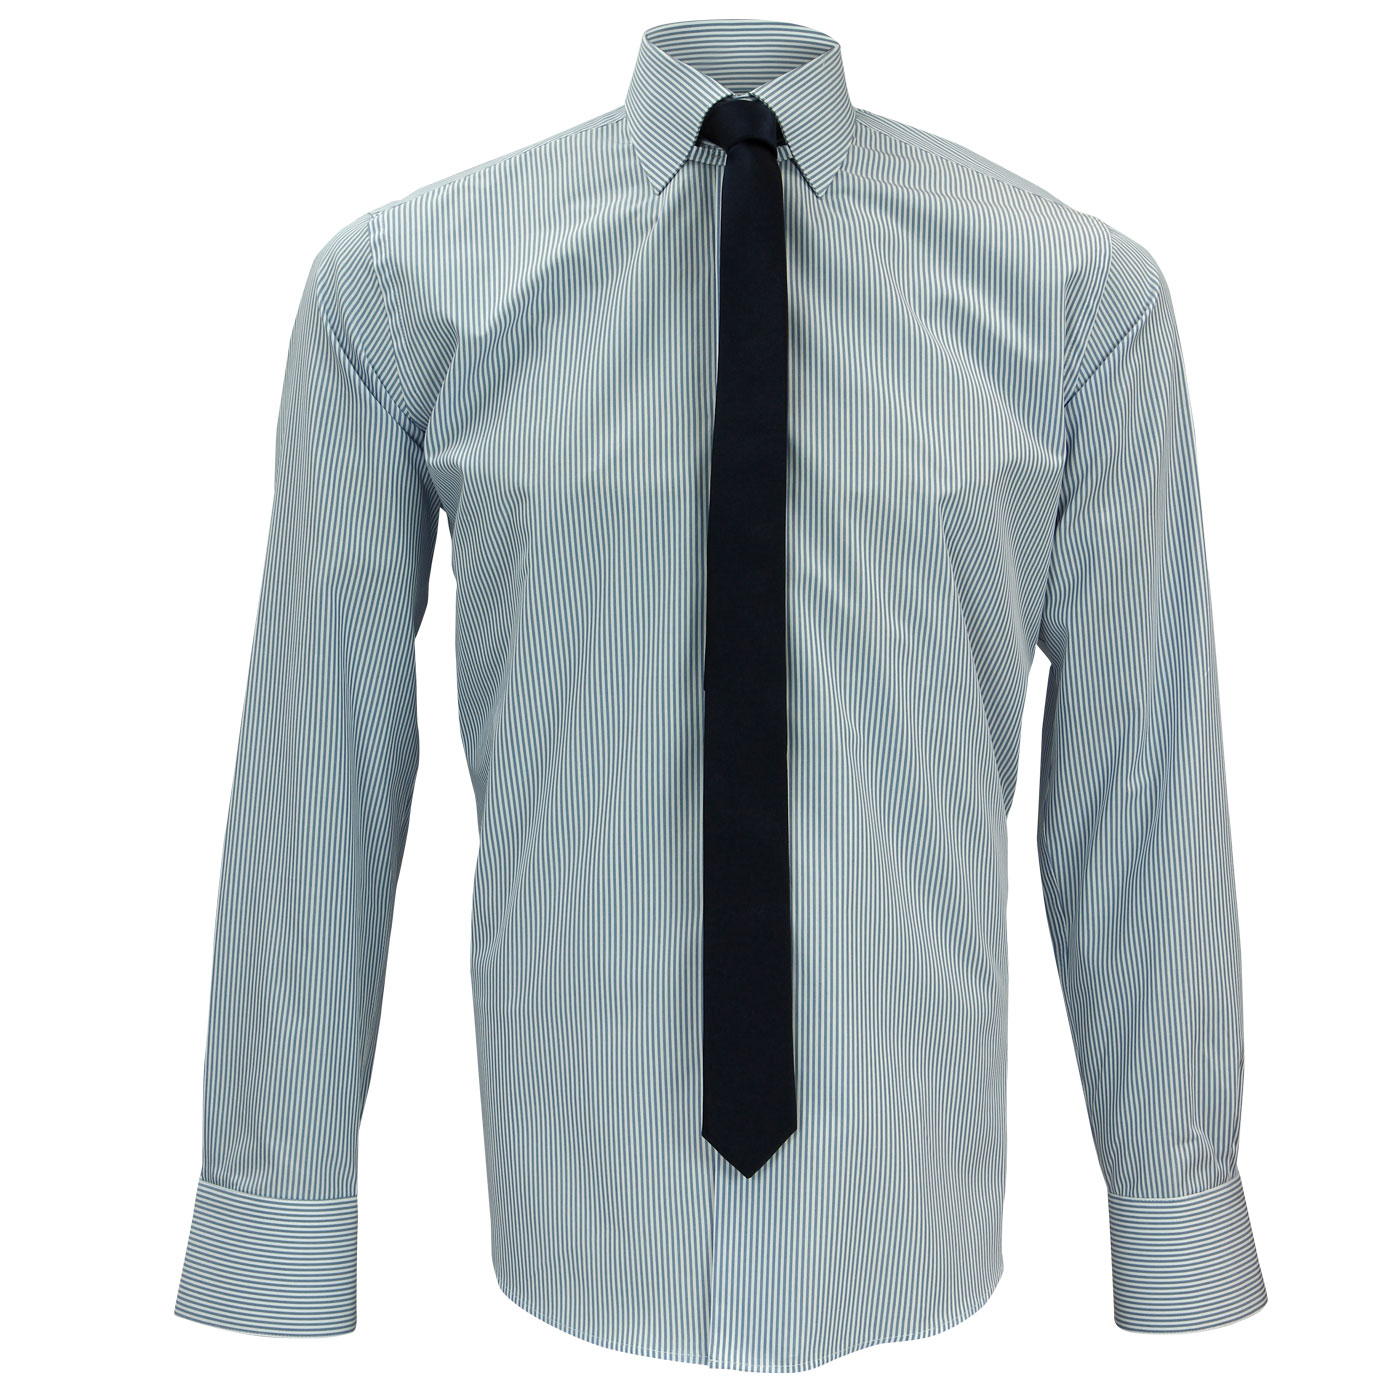 Shirt and tie, selling men's shirt: Webmenshirts